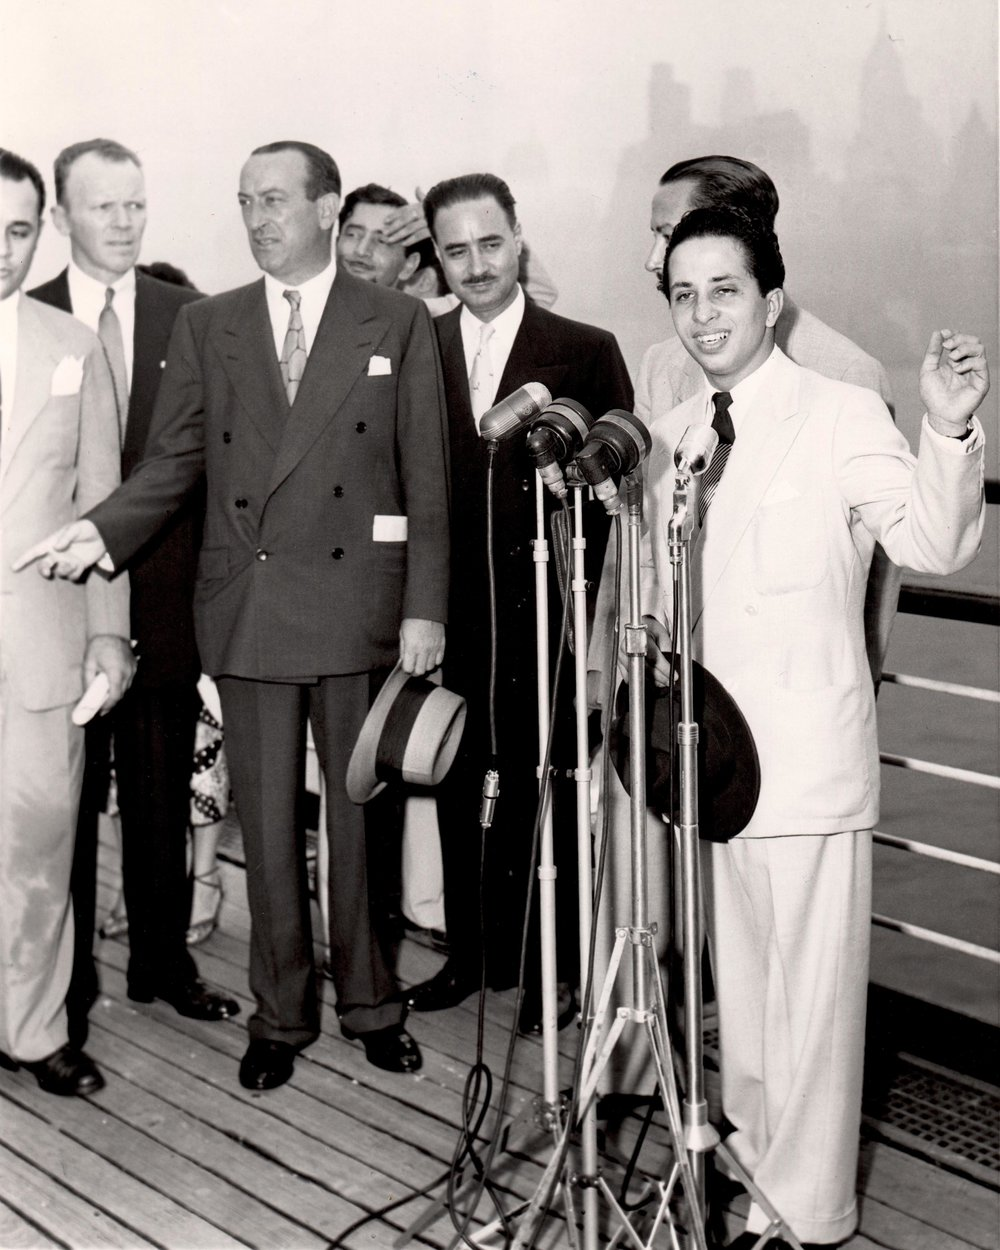 King Faisal II Addressing the Press on board the RMS Queen Mary